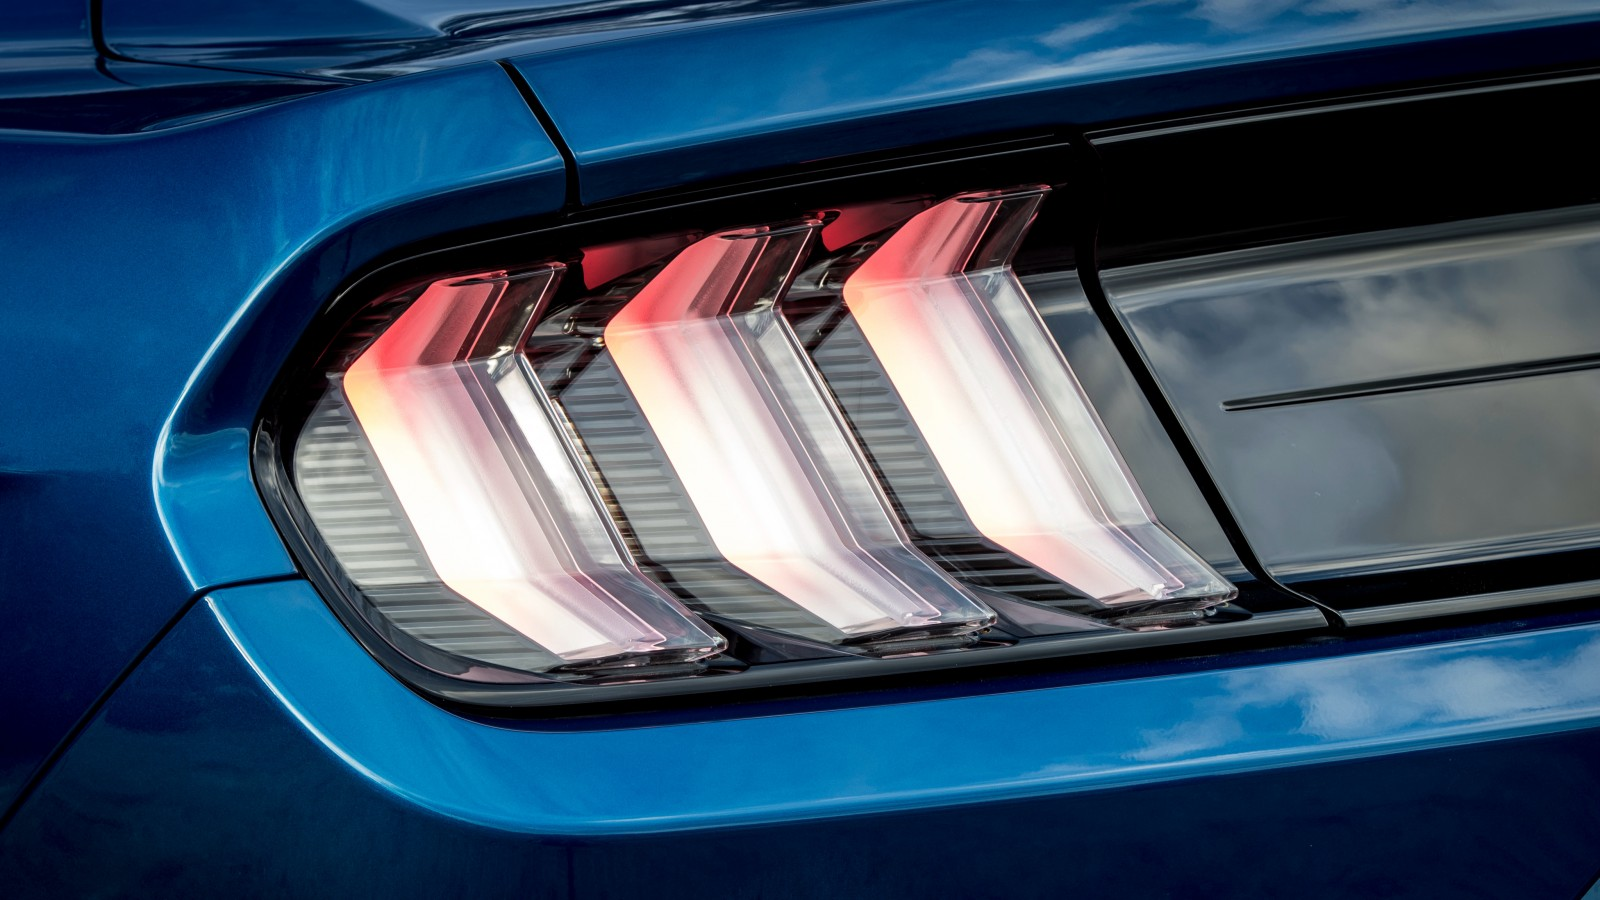 Download Hd Wallpapers Of Audi Cars Ford Mustang Led Tail Lights 4k Wallpaper Hd Car